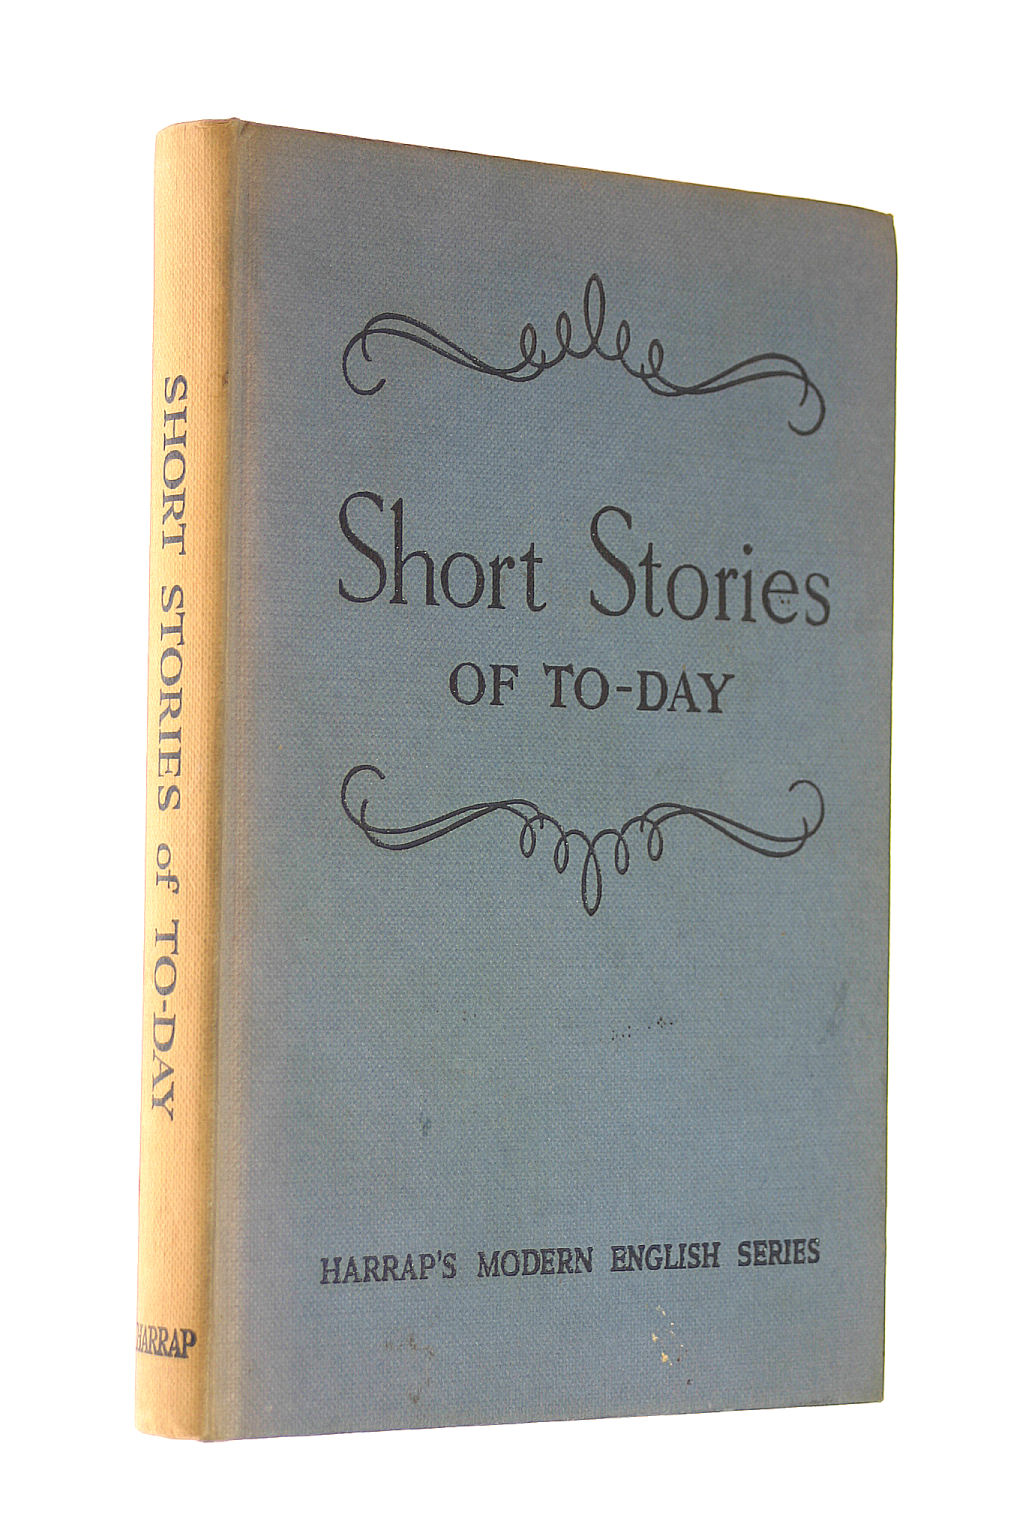 Image for Short Stories Of To-Day (Harrap'S Modern English Series)